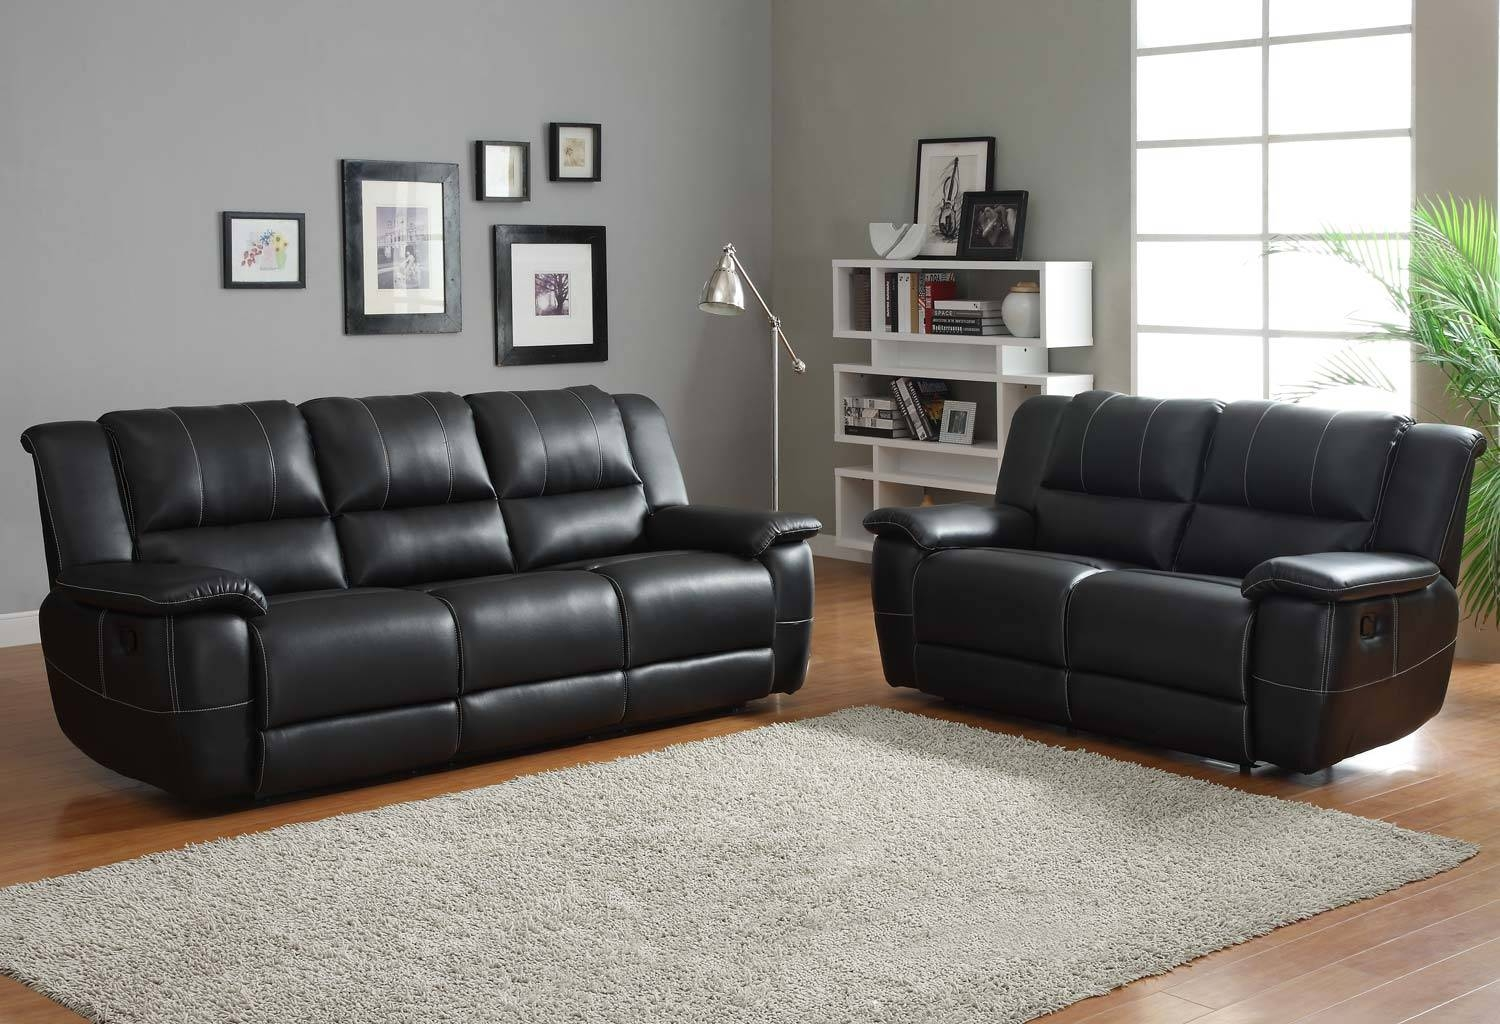 Sofas Center : Shocking Black Sofa Set Picture Ideas Home Paris pertaining to Contemporary Black Leather Sofas (Image 27 of 30)